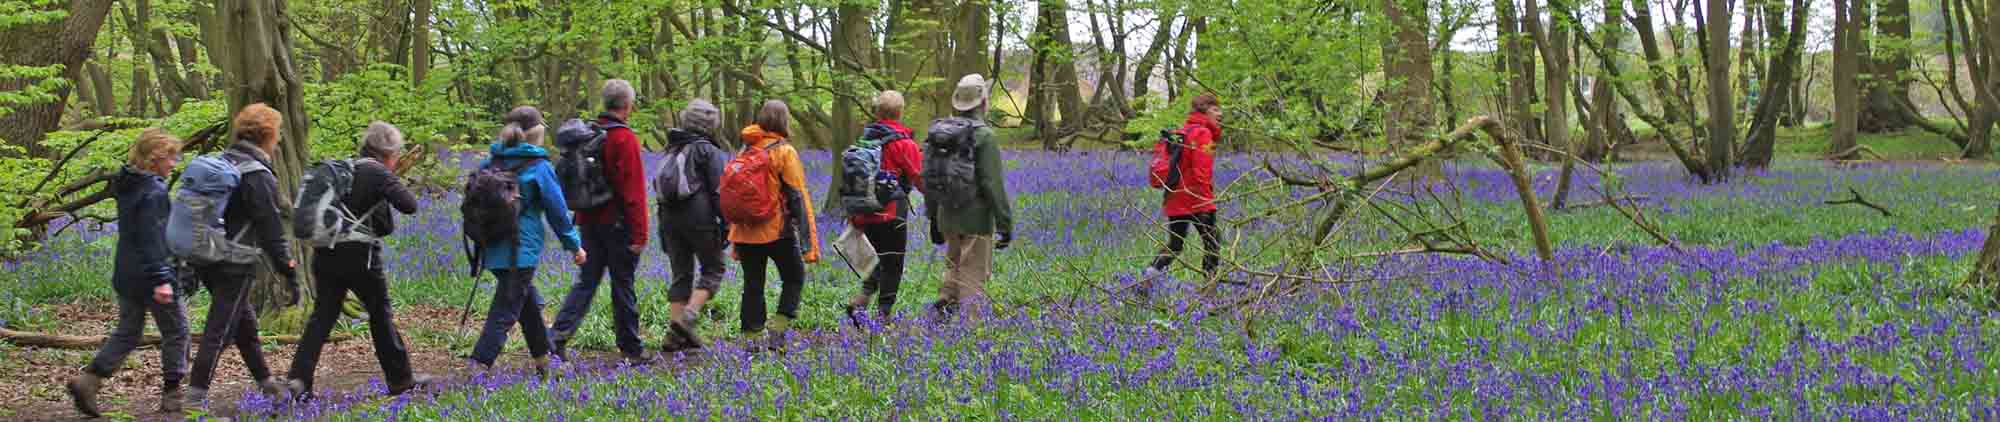 26 Apr 2015 Bluebell walk